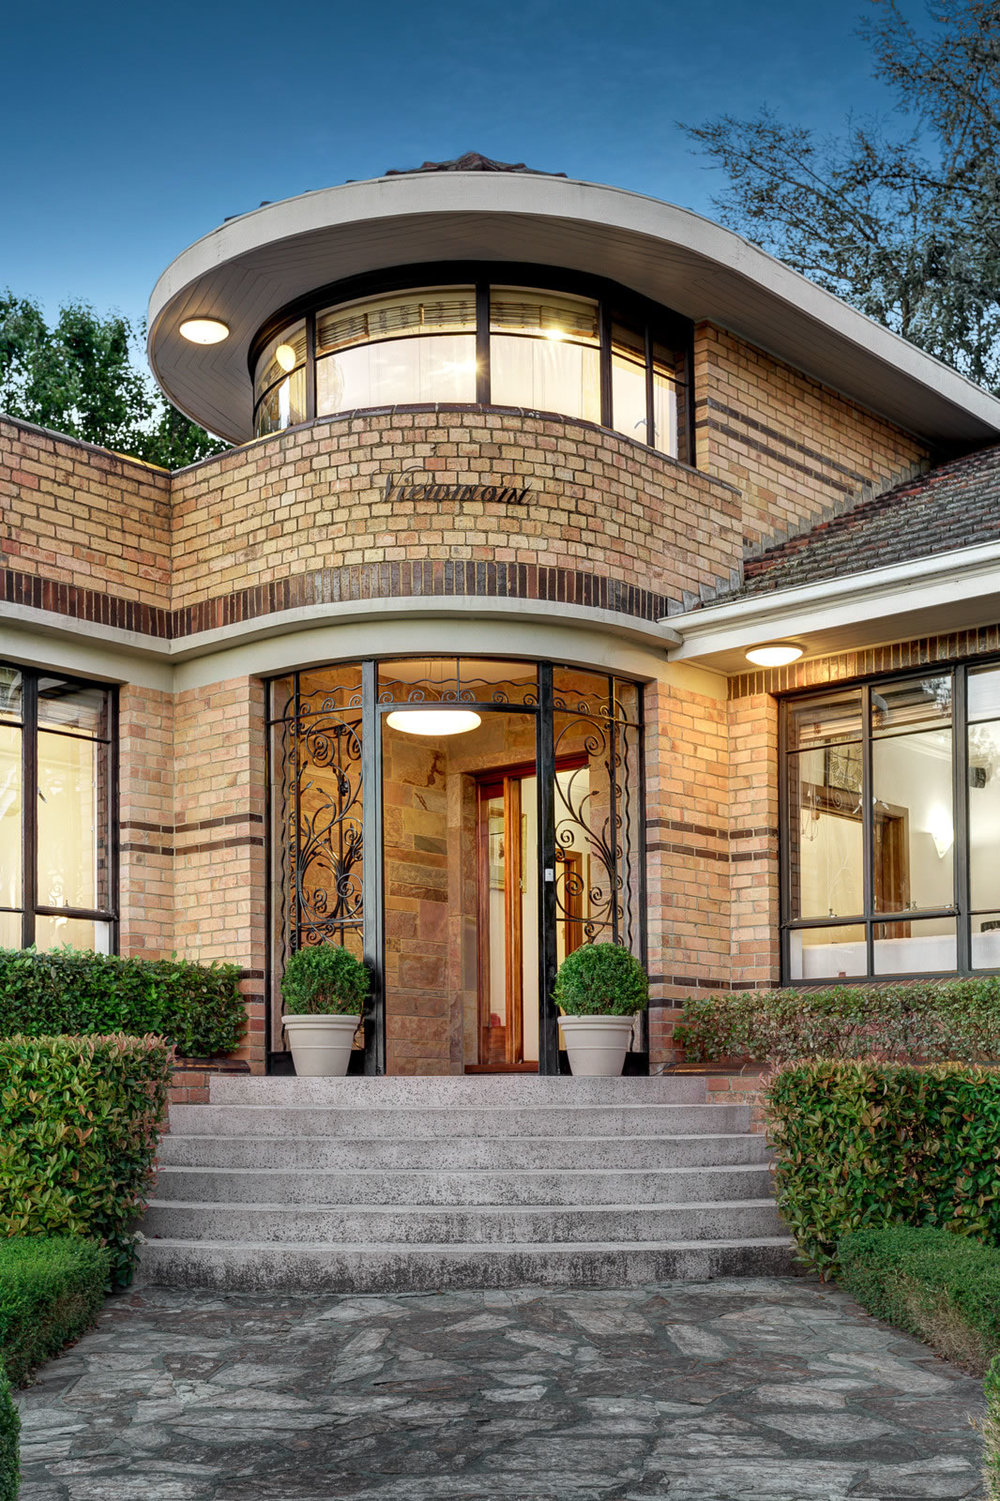 Historical architectural style the art deco waterfall Architectural home builders